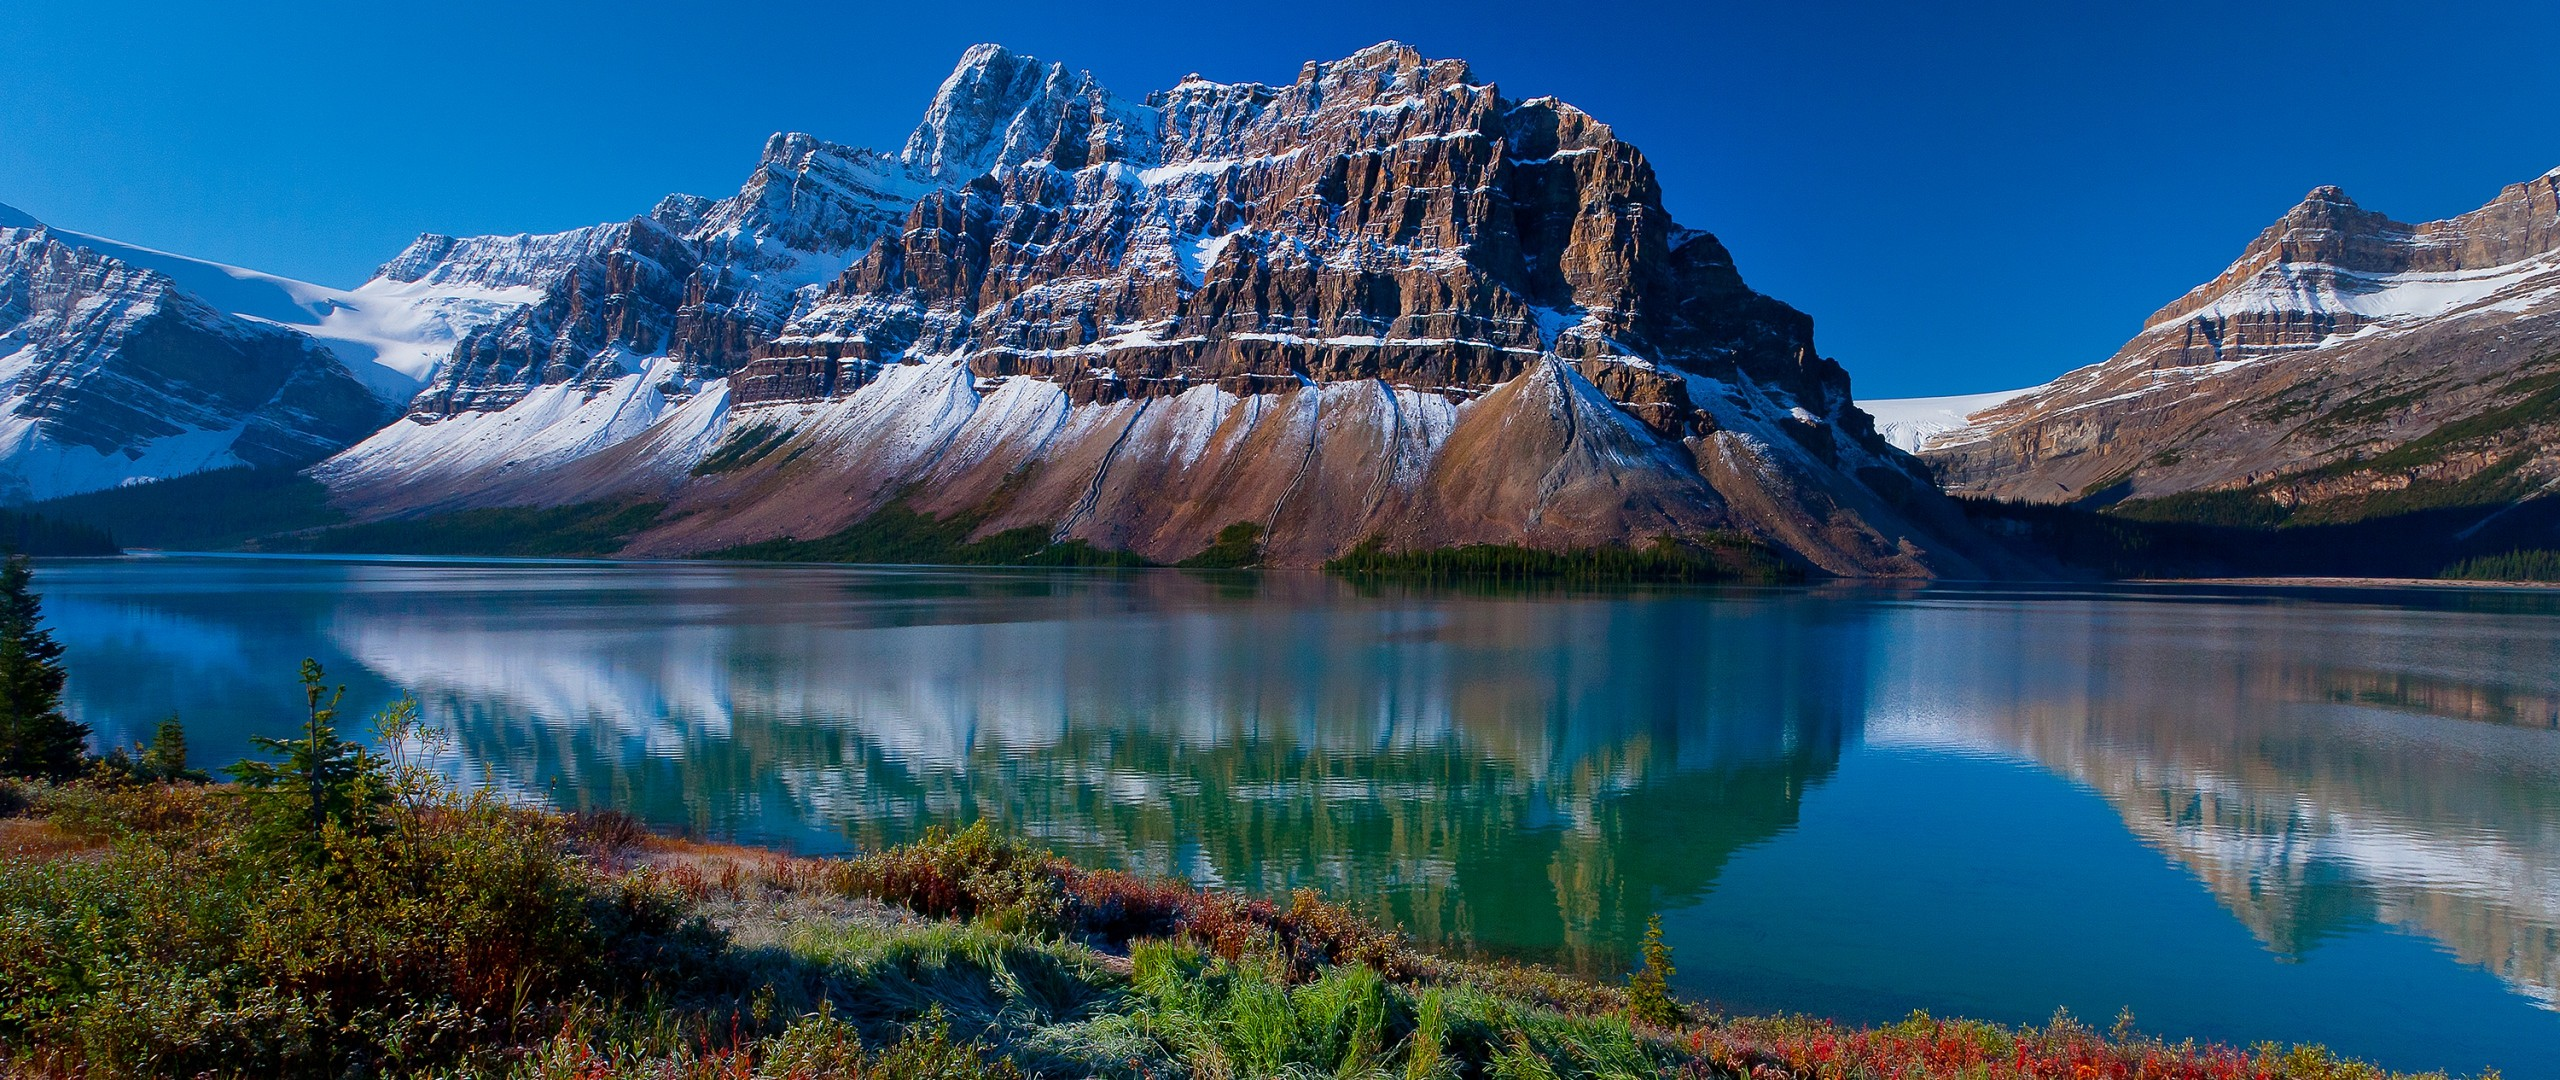 General 2560x1080 landscape lake mountains snowy mountain reflection nature spring cliff